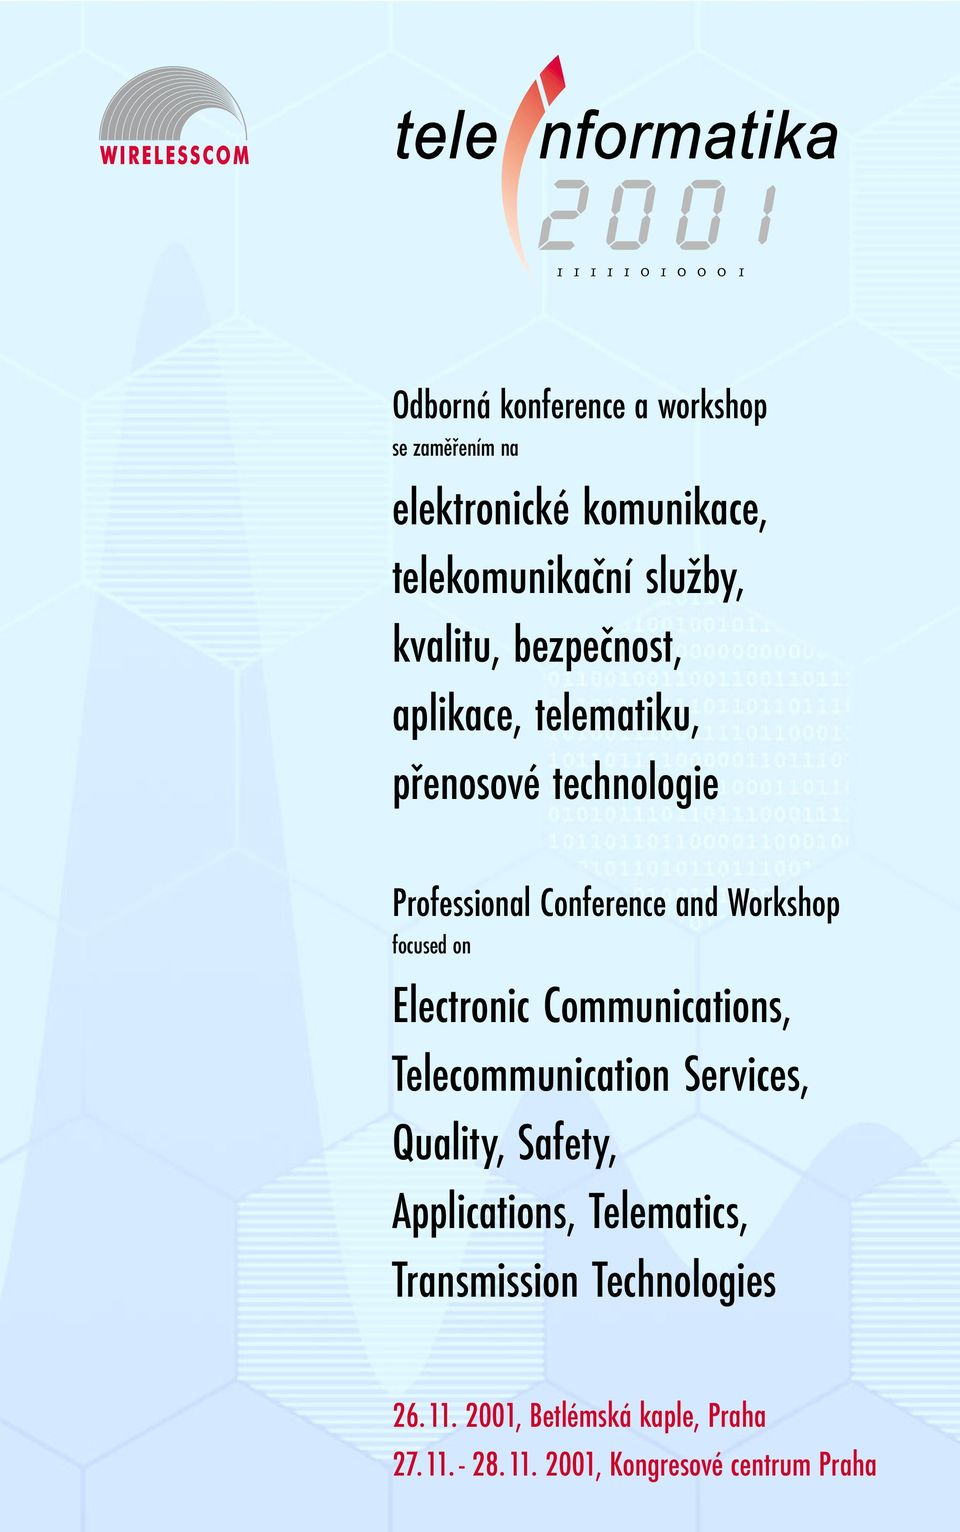 Electronic Communications, Telecommunication Services, Quality, Safety, Applications, Telematics,